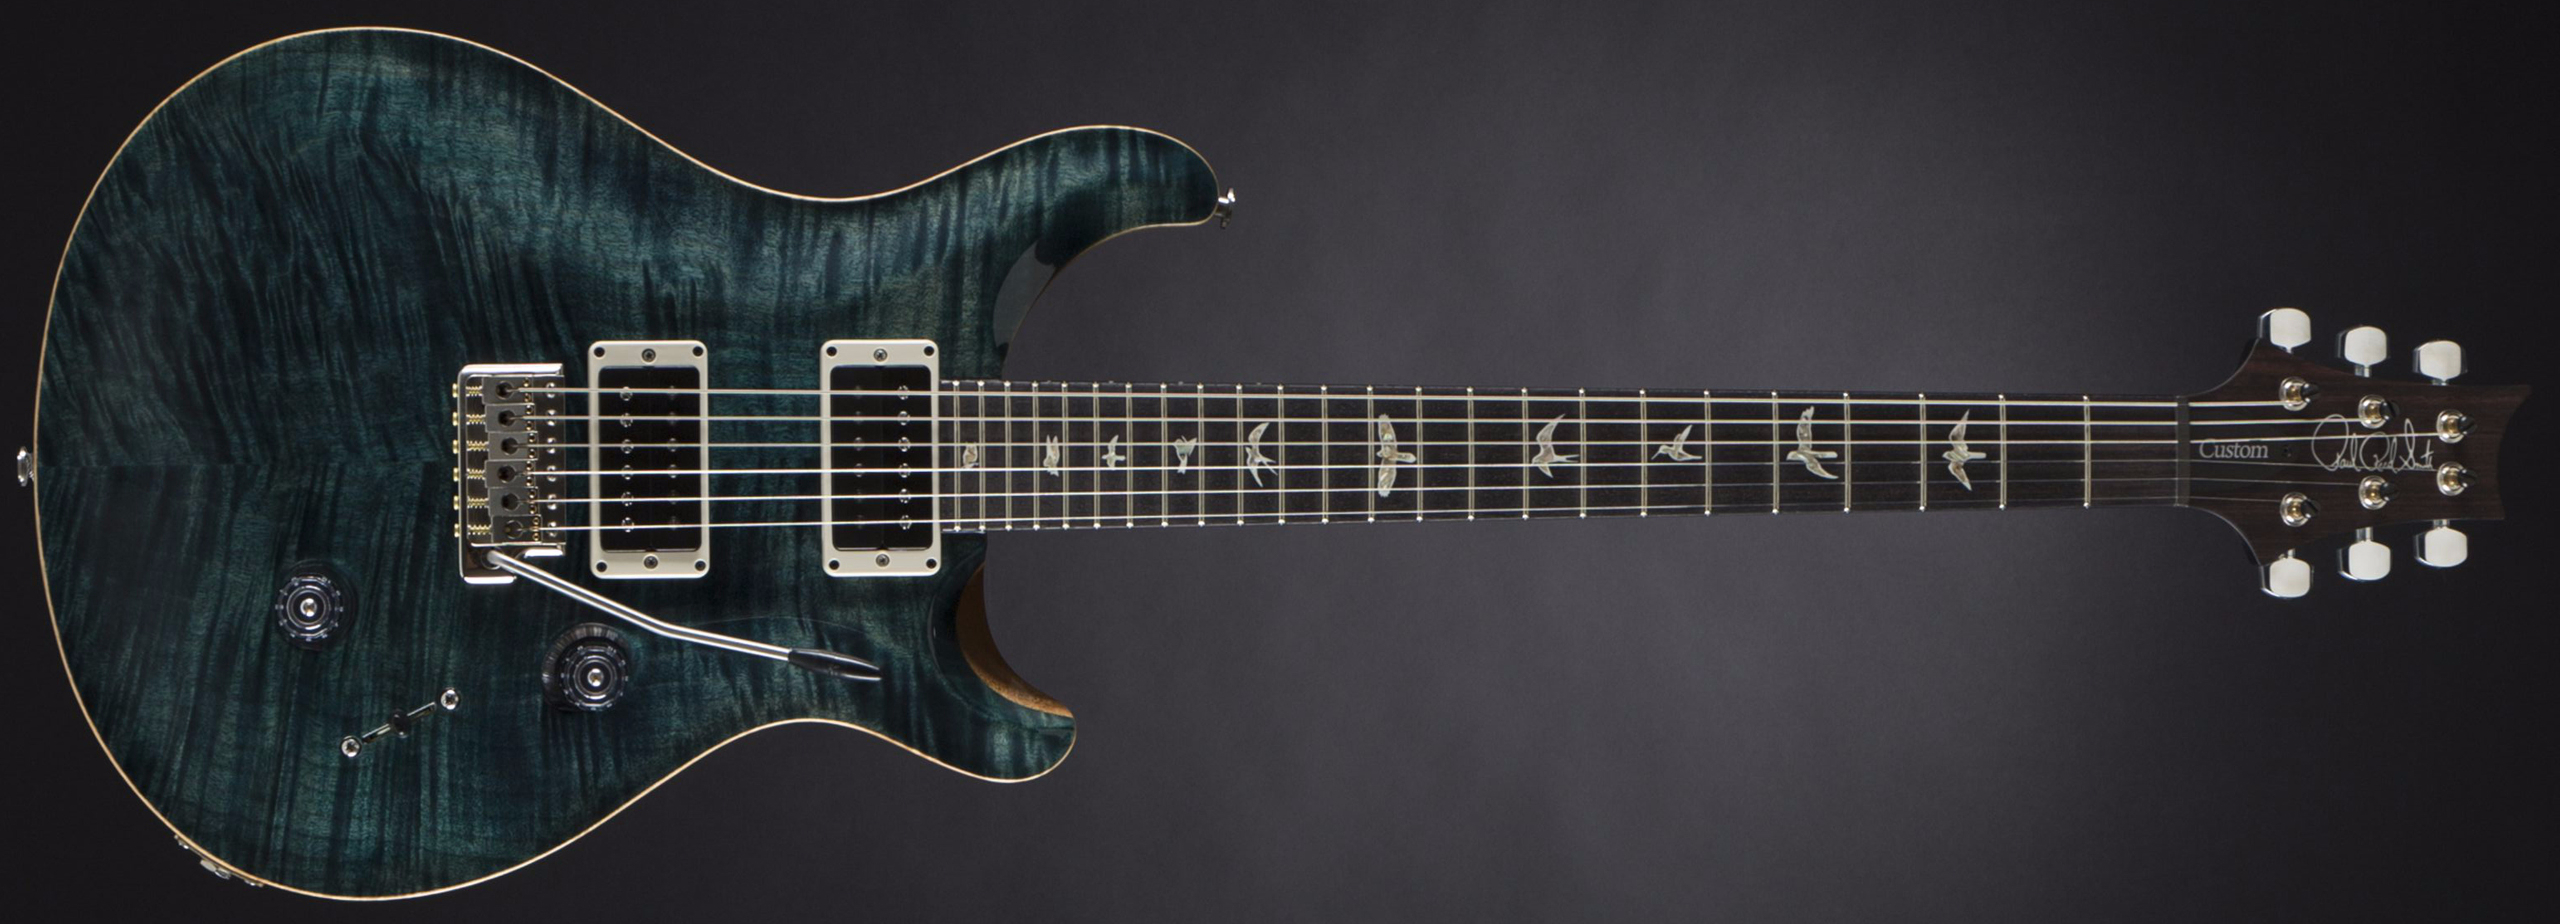 PRS Custom 24 10-Top Slate Blue #16 229683